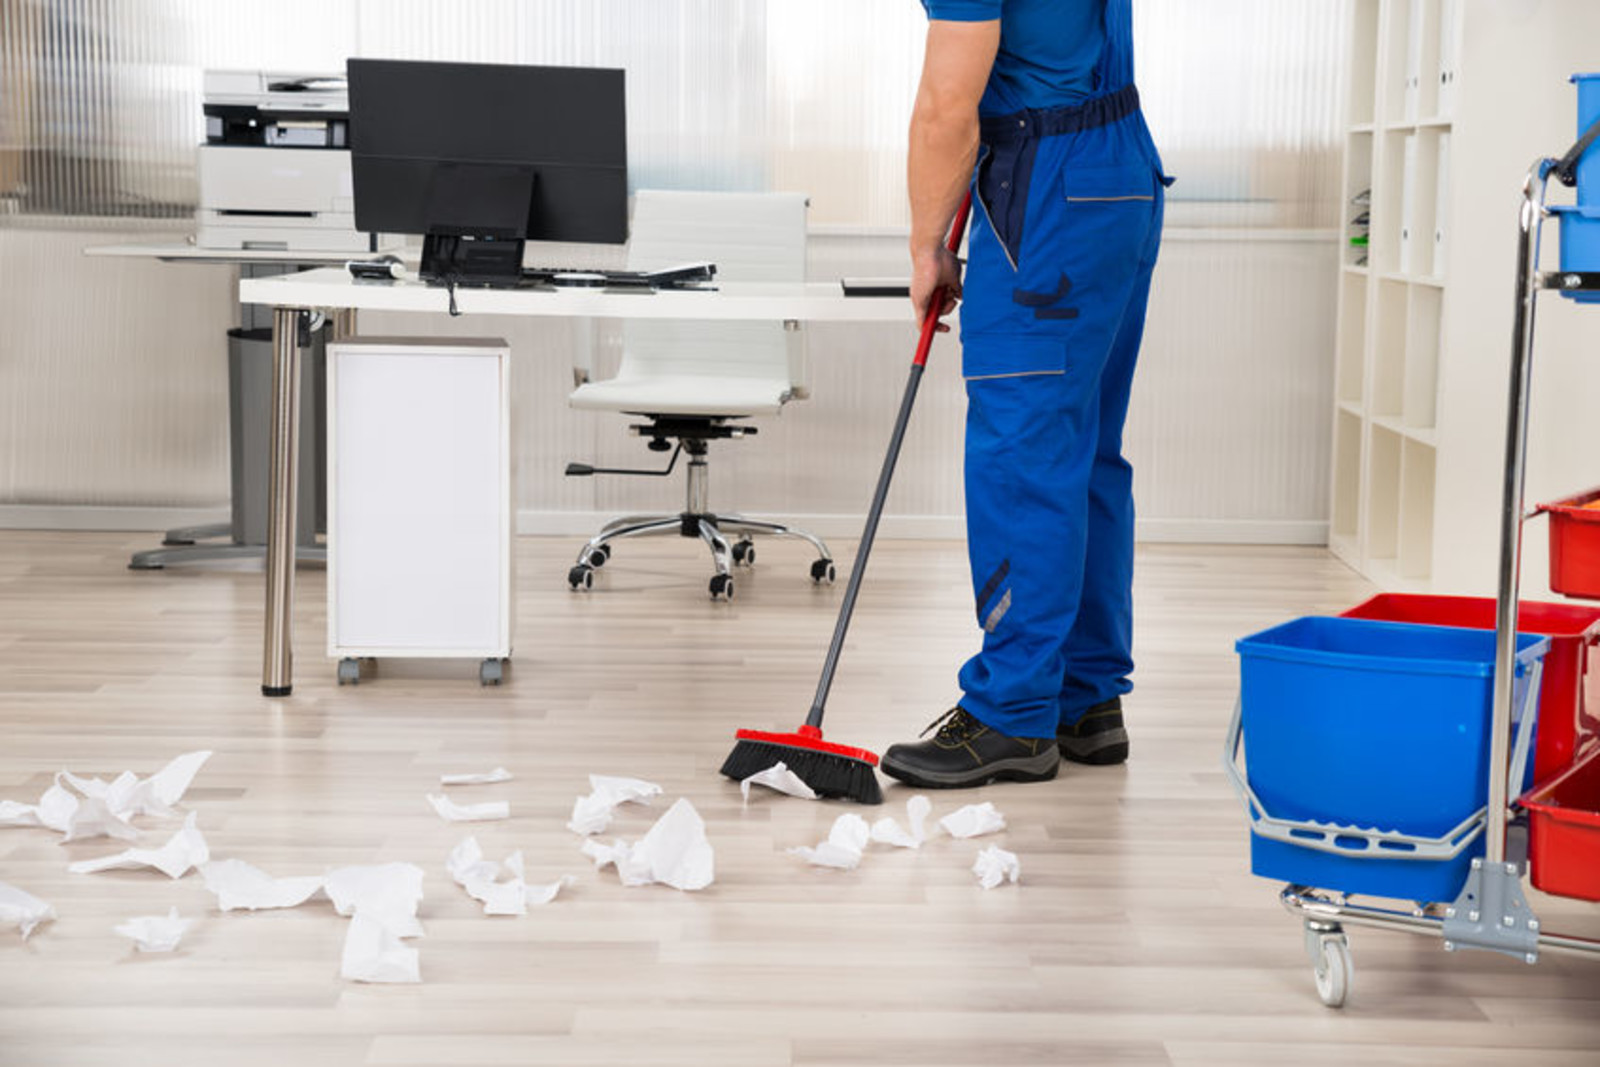 Cleaning Services Cleaning For Office Spaces. Regardless If You Work And/or  Manage A Retail Store, Hospital, School, Gym Or Any Other Commercial Space,  ...